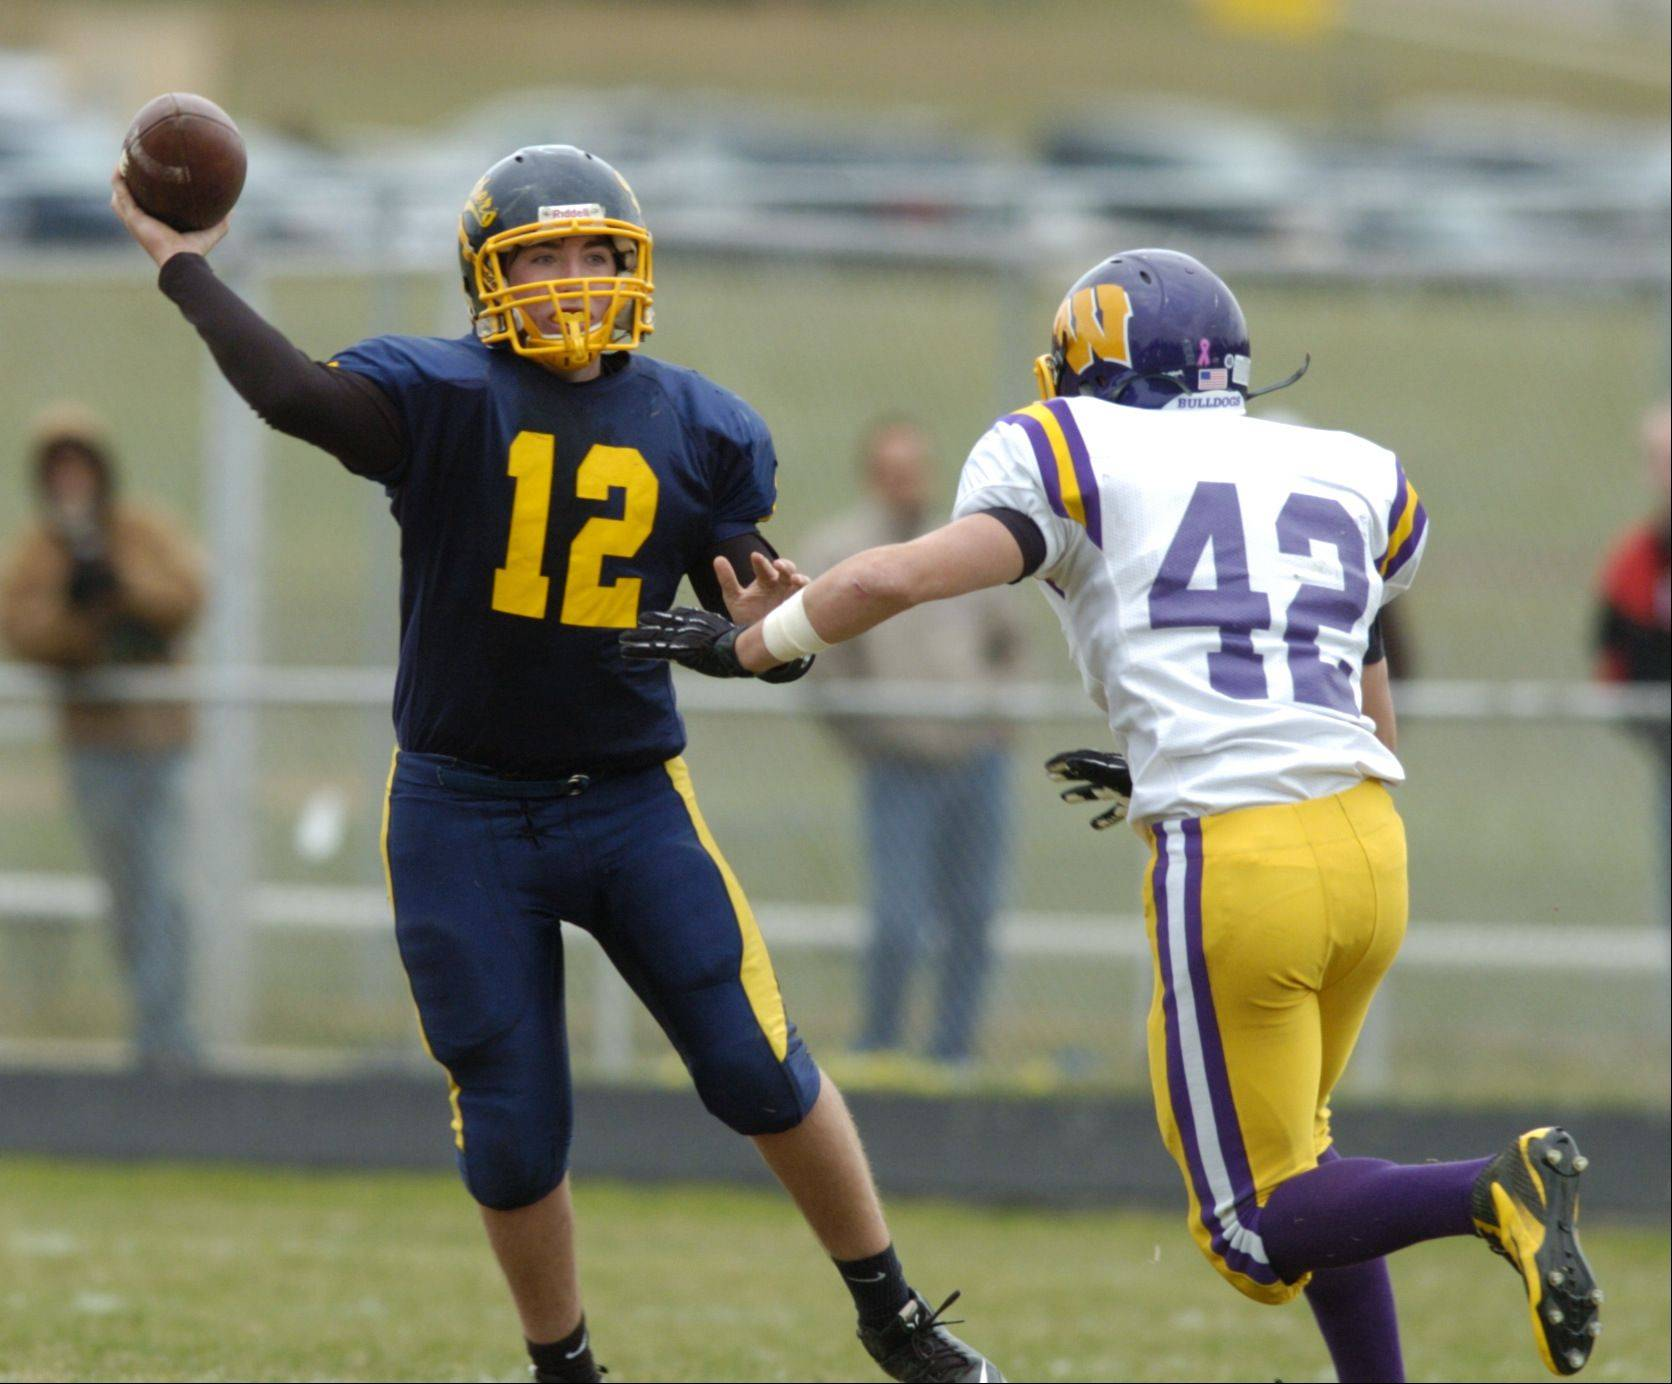 Week -7- Photos from the Wauconda at Round Lake football game on Saturday, Oct. 6.